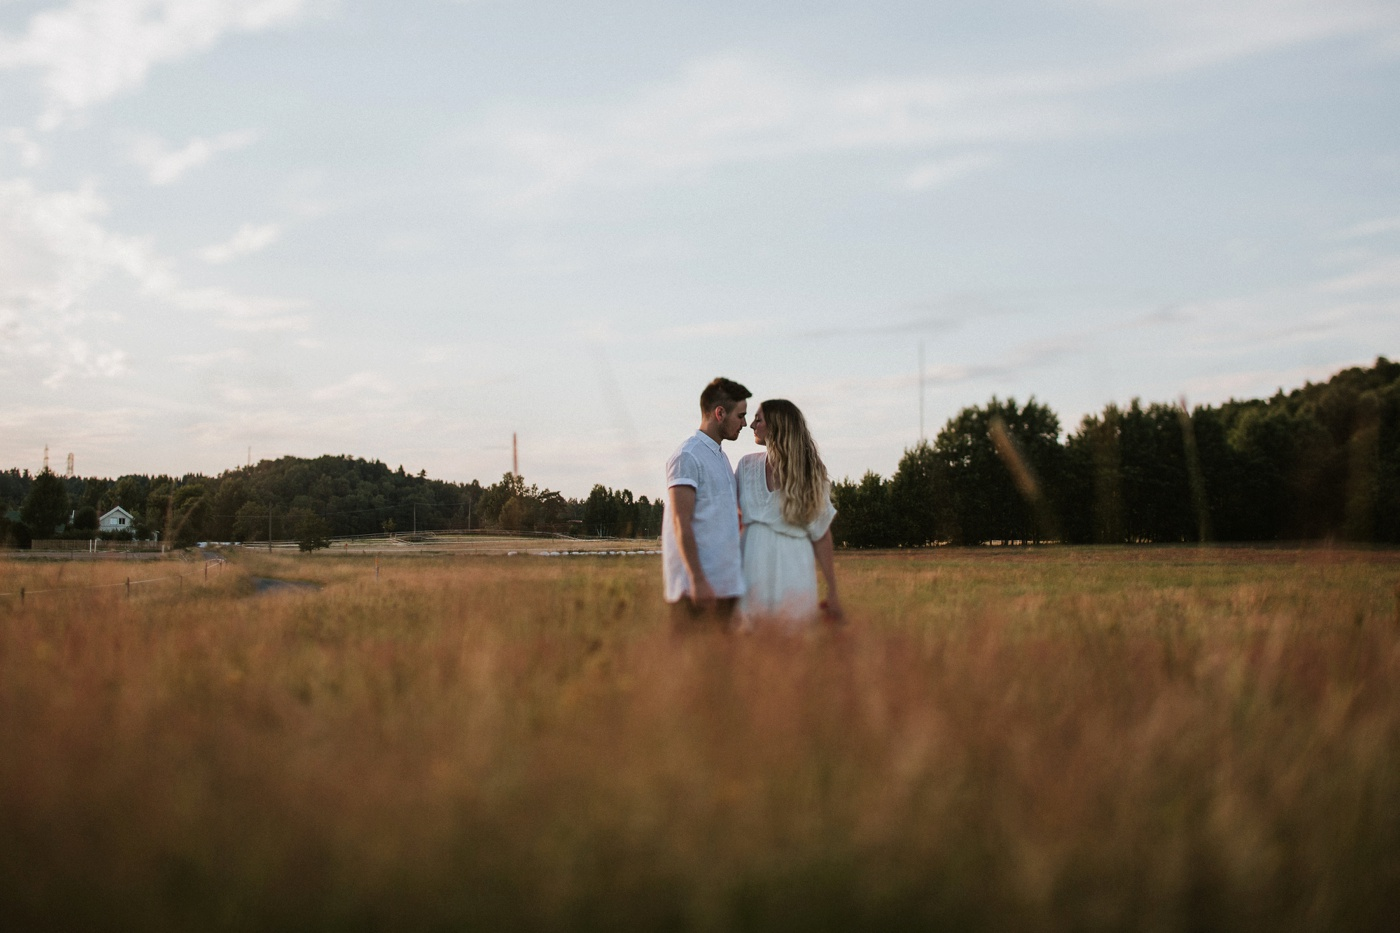 natalie-wictor_swedish-relaxed-candid-quirky-fun-engagement-session_16